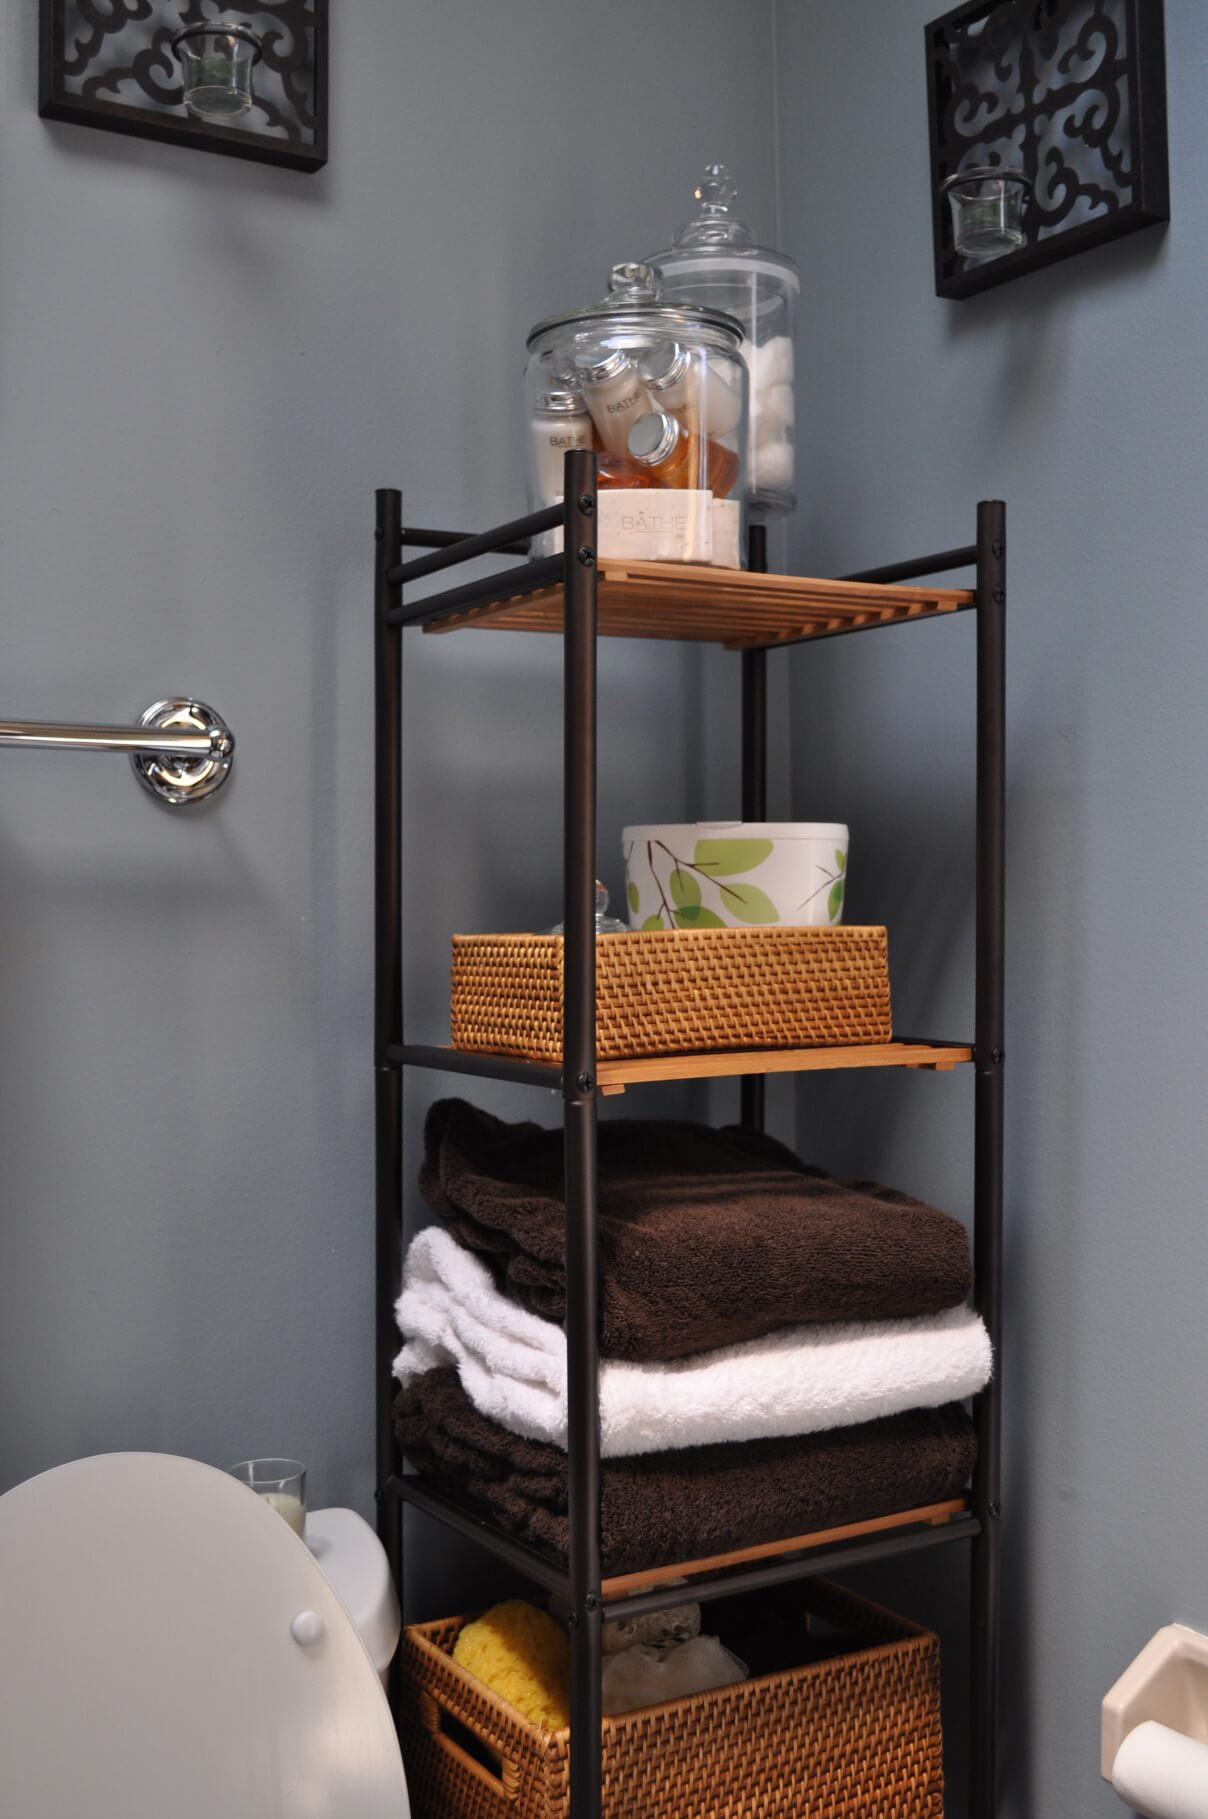 small ideas space optimizing bathroom shelving for best